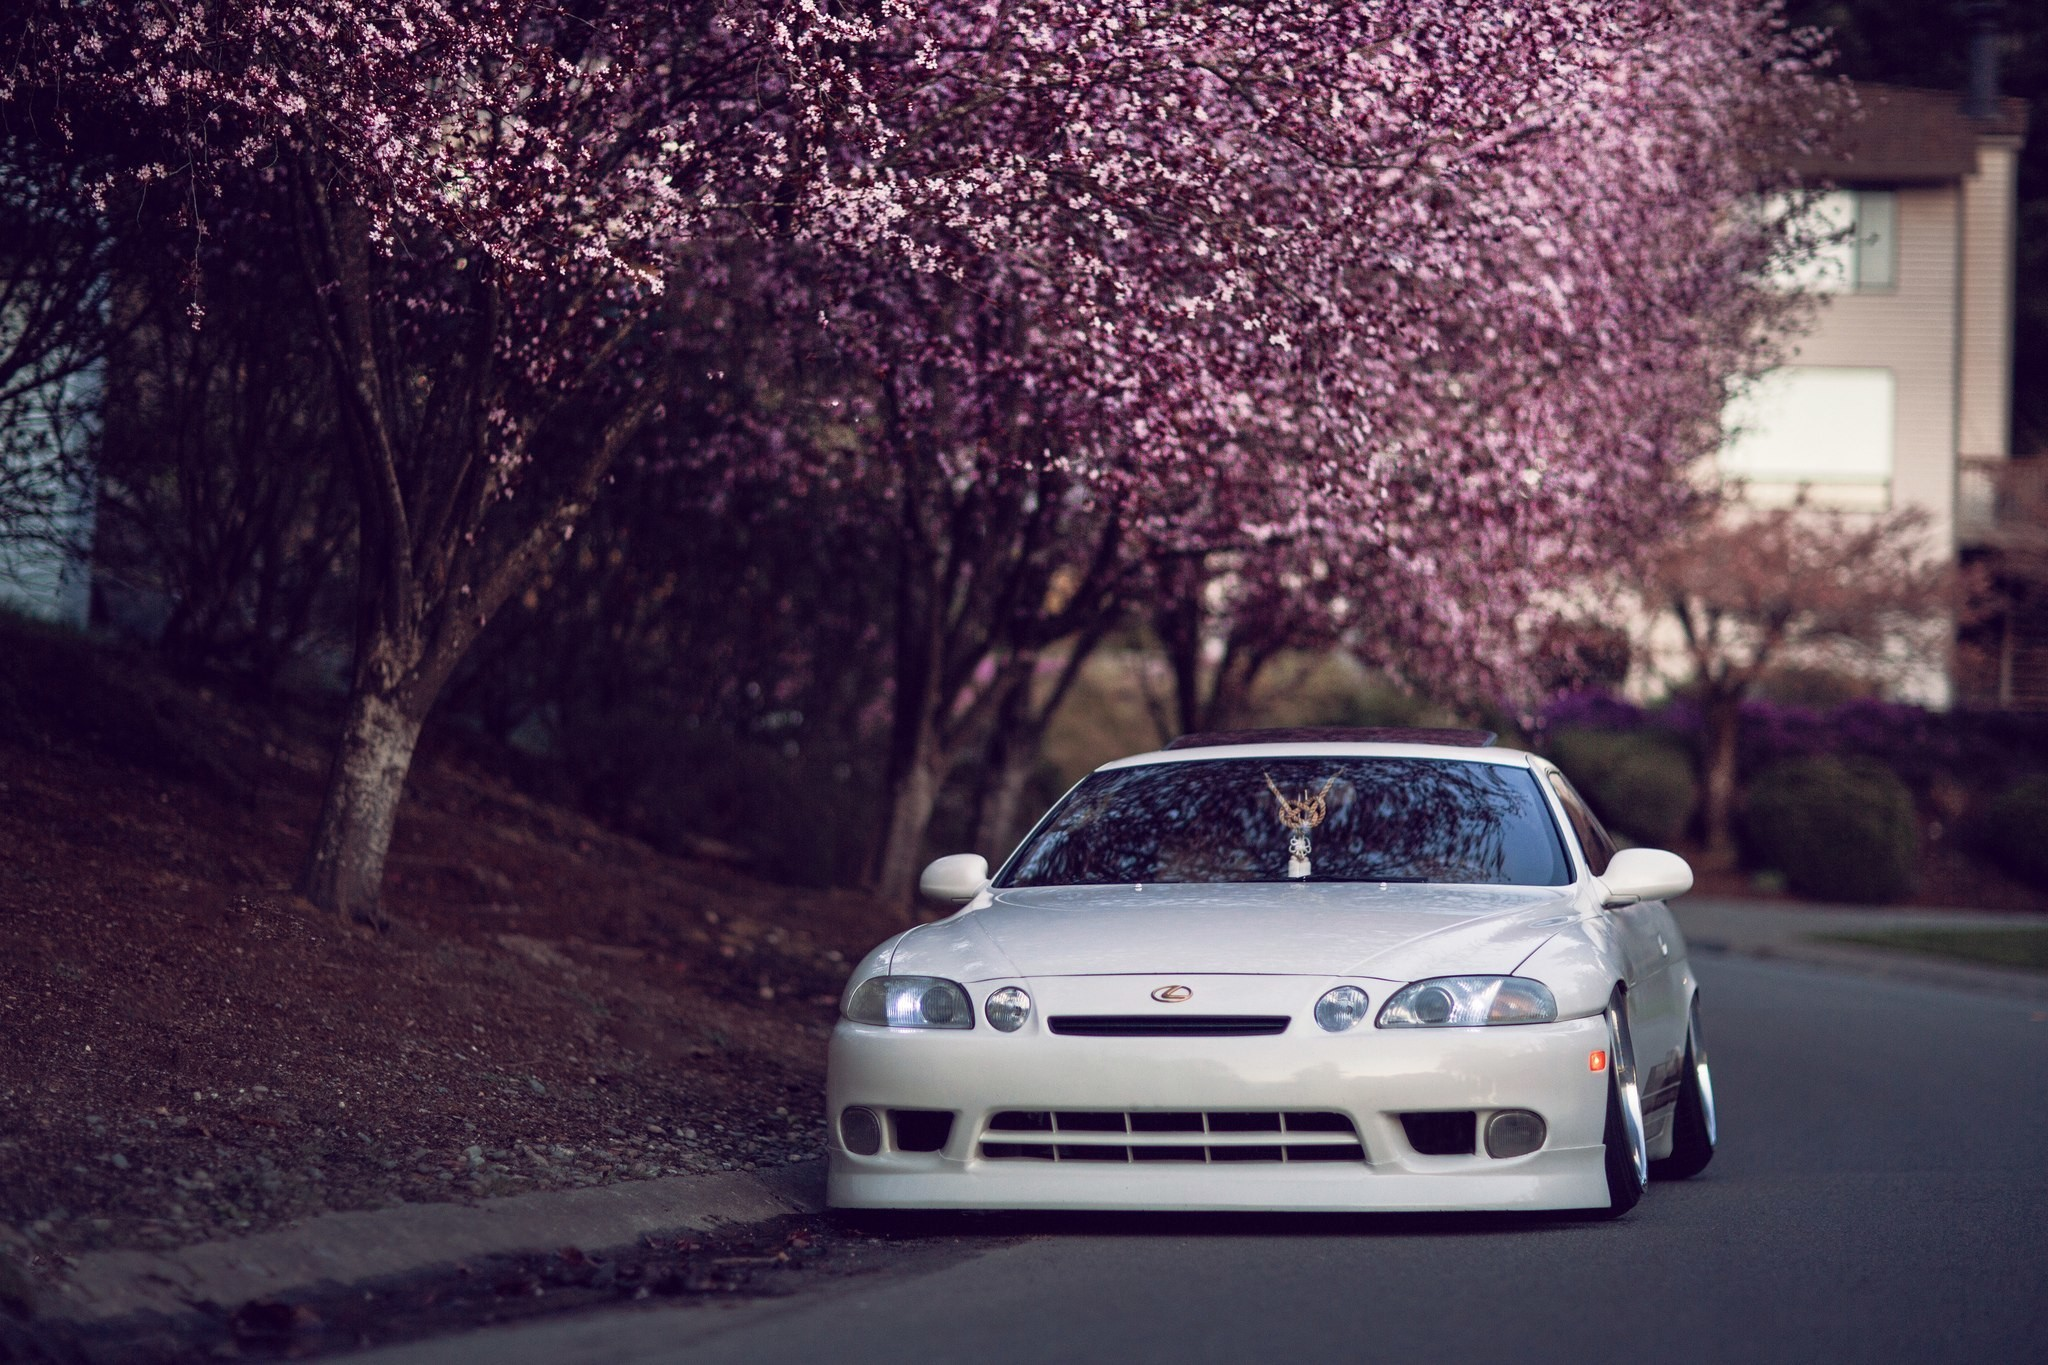 Tuned Car Wallpapers 65 Images